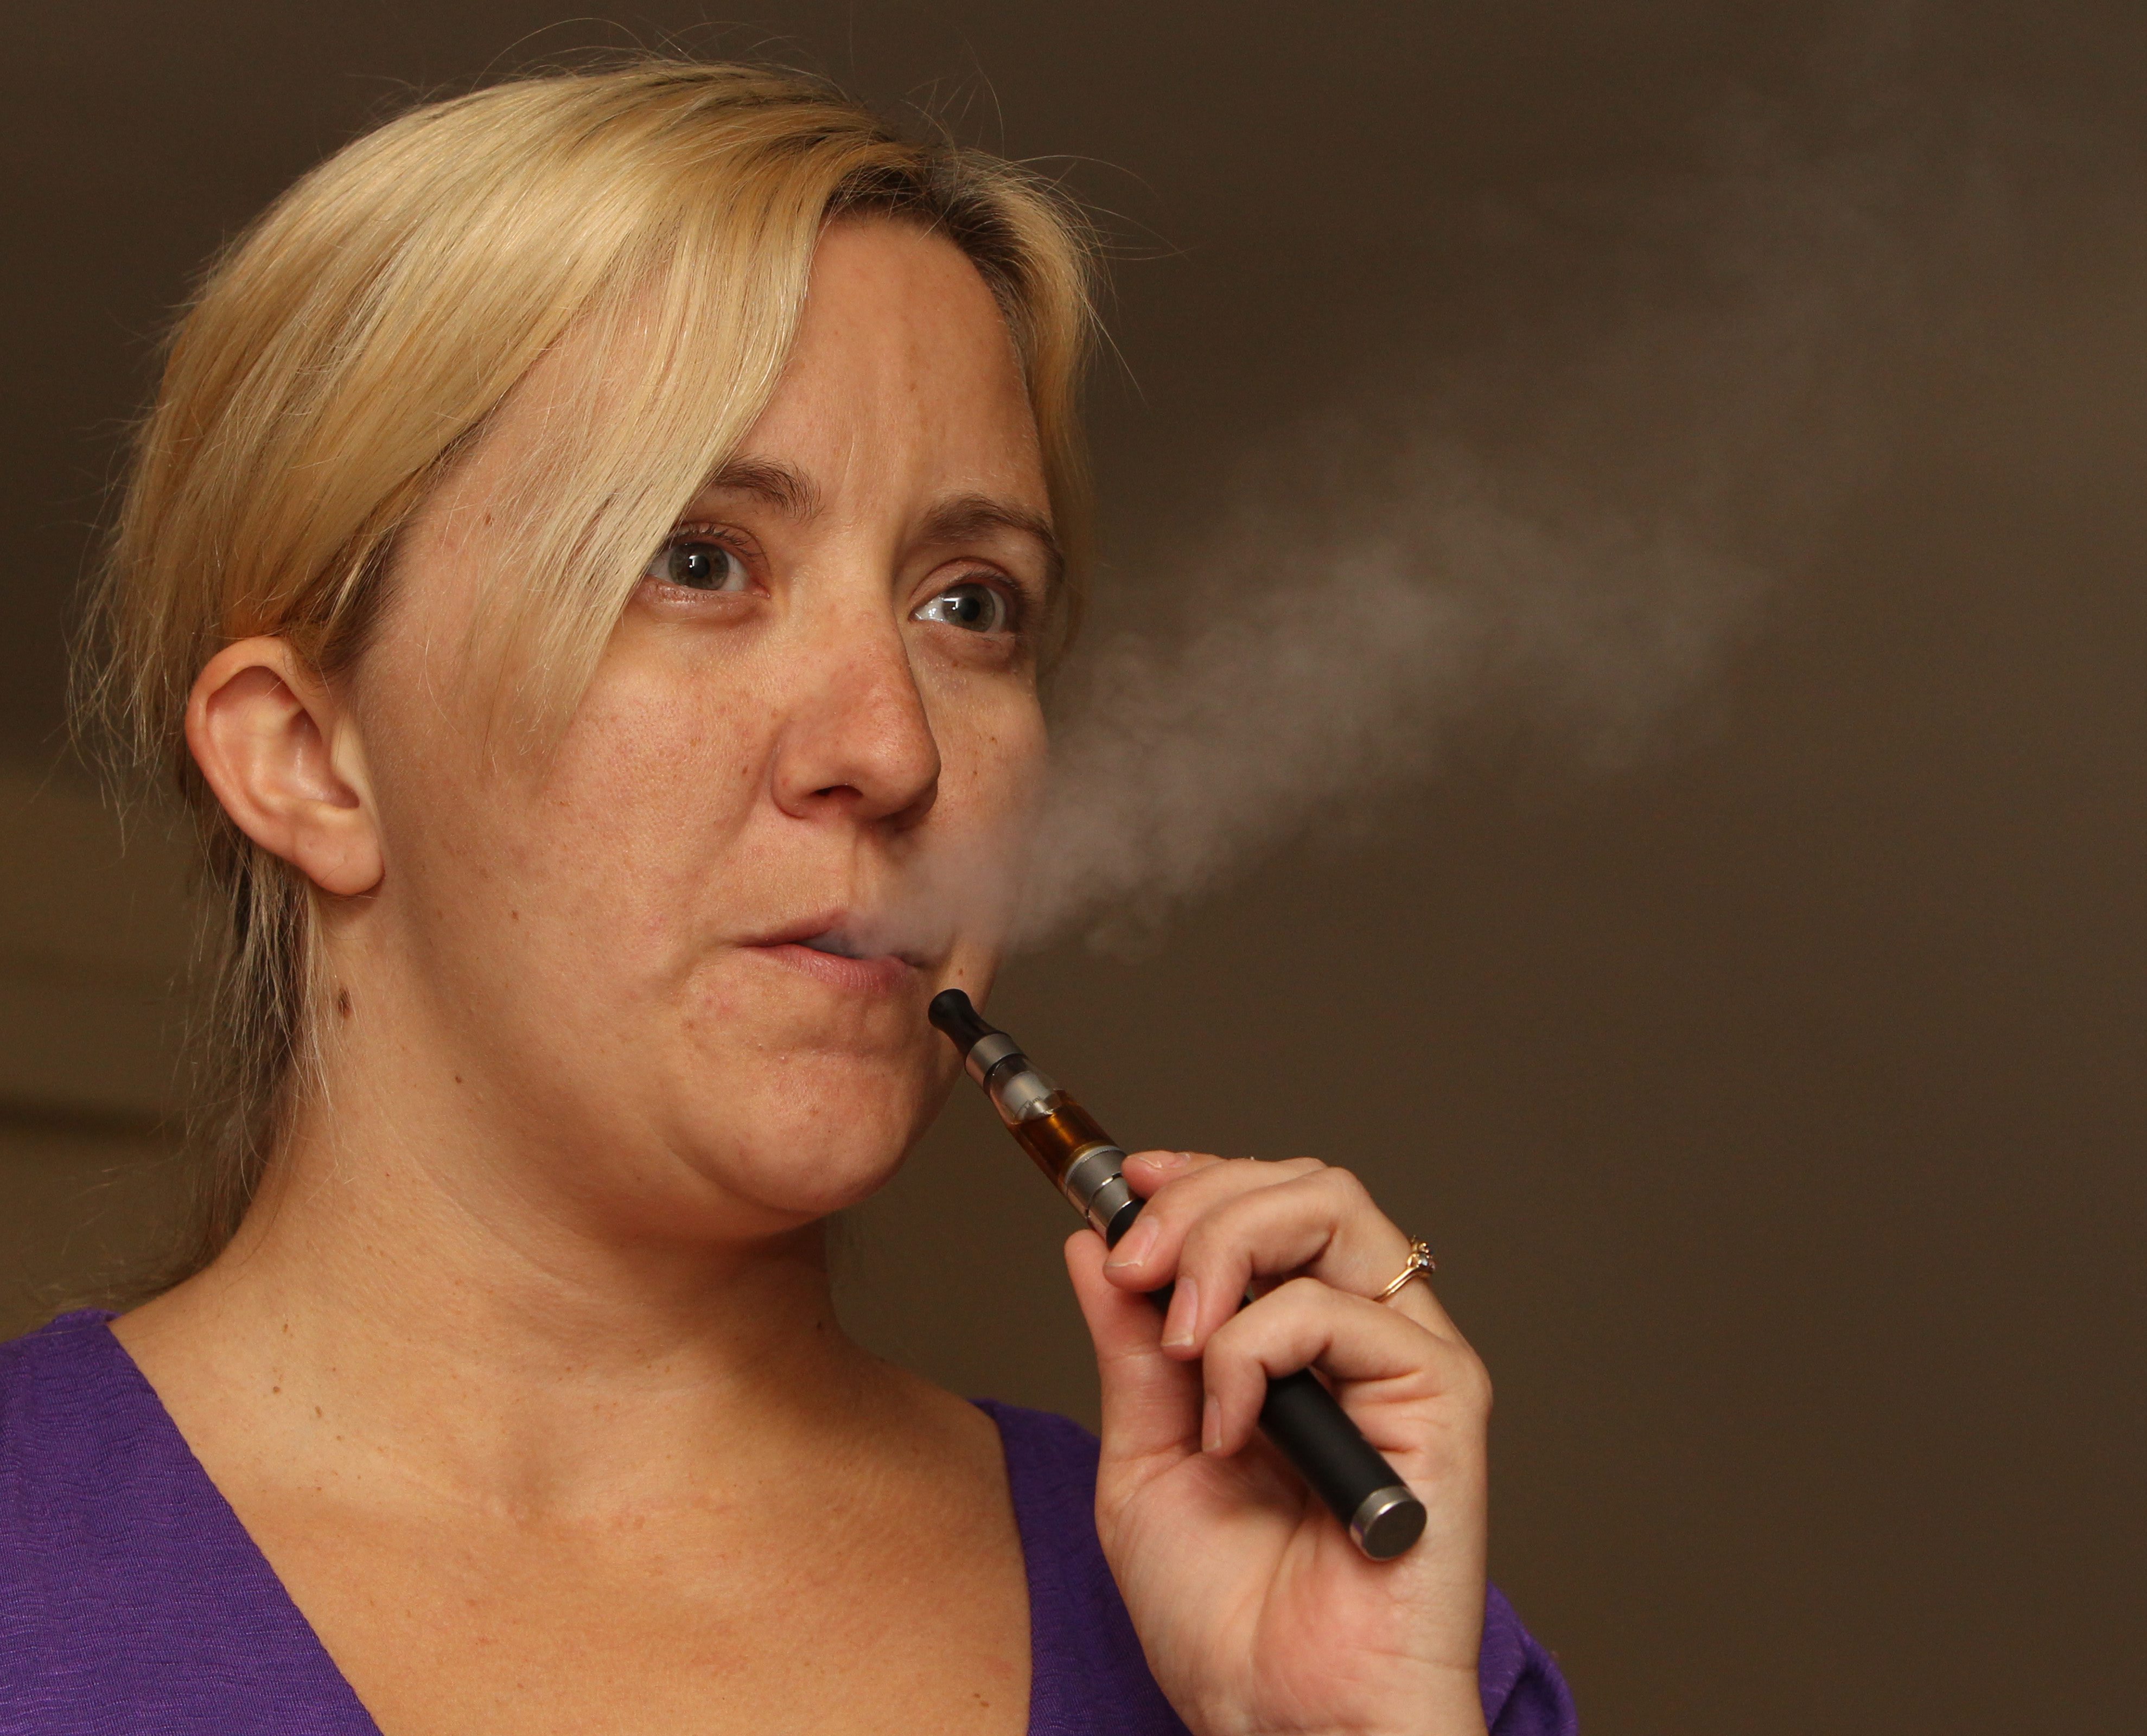 James P. McCoy/Buffalo News    'You just hit it whenever you get the urge,'  Kelly Randles said of e-cigarettes.